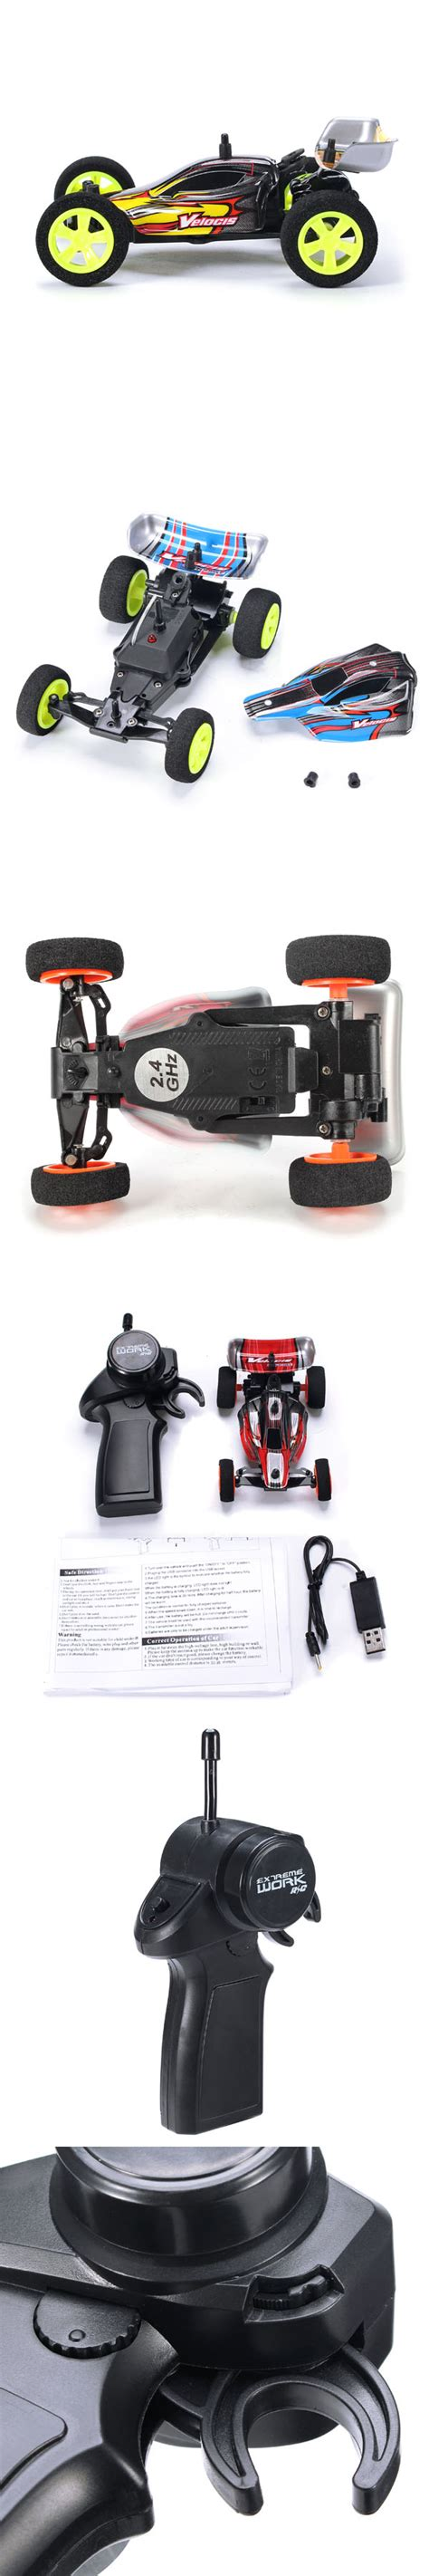 Diskon Velocis 1 32 2 4g Rc Racing Car Edition Rc Formula Car 2pcs velocis 1 32 2 4g rc racing car mutiplayer in parallel operate usb charging edition alex nld